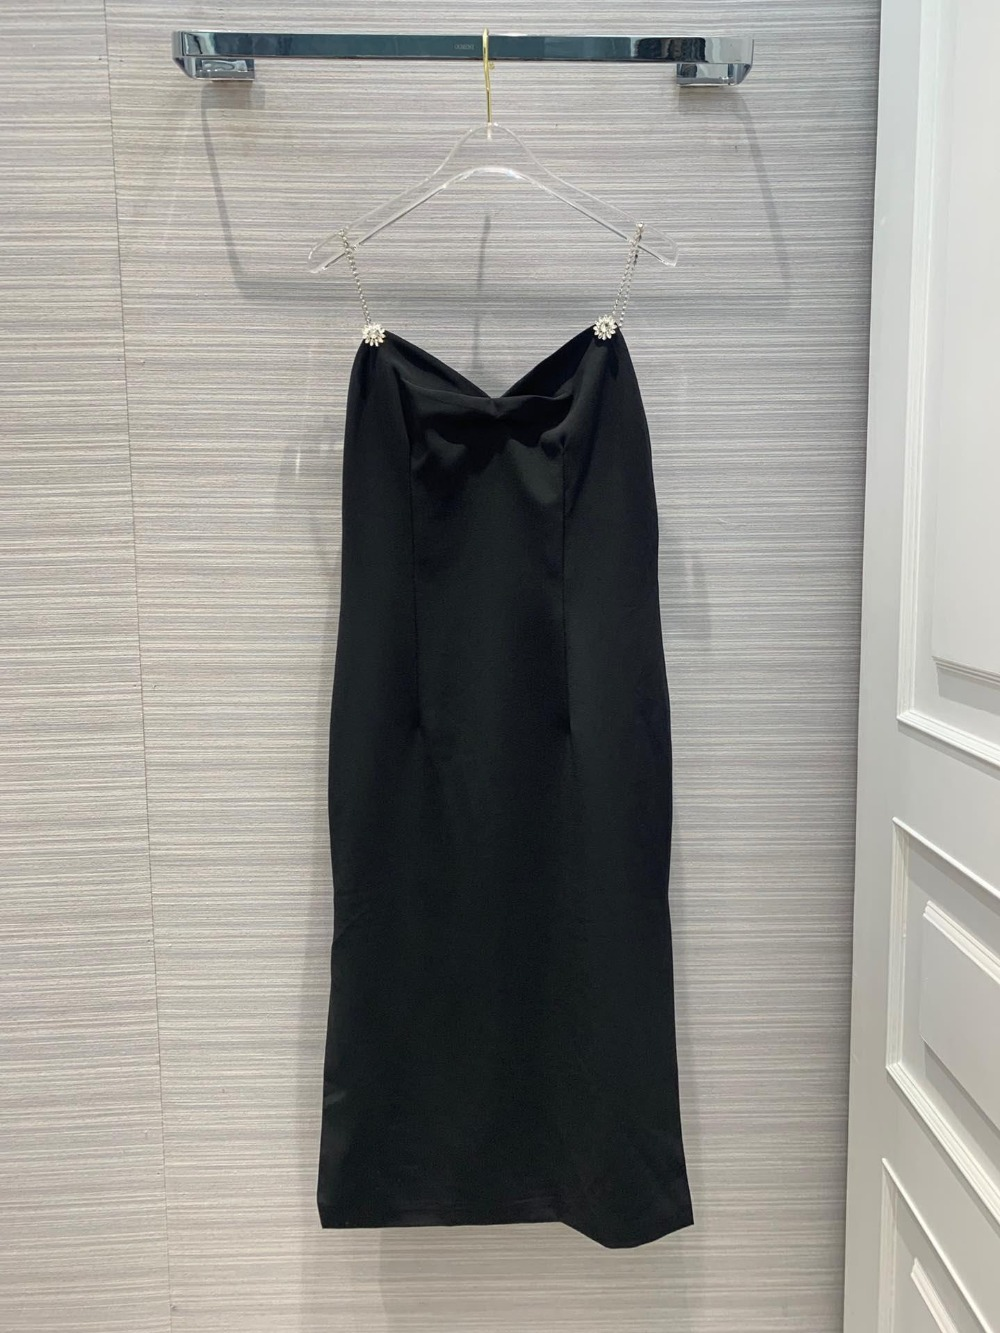 2019 spring and summer ladies fashion black and white stitching sleeveless women s dress 0329